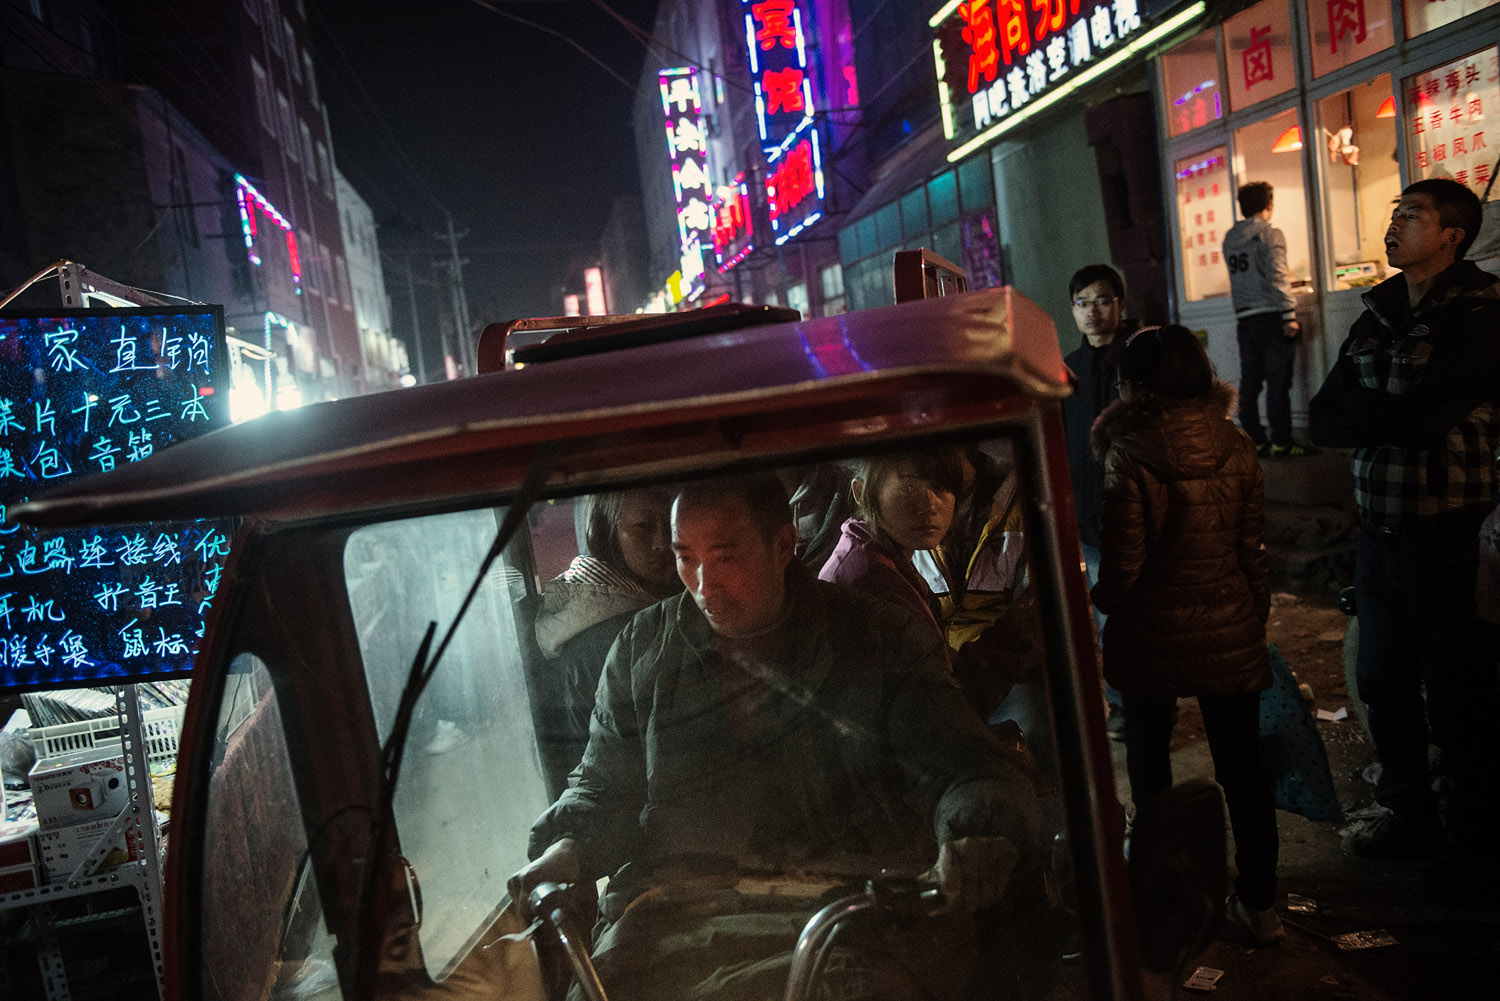 Foxconn workers sitting in a three-wheel taxi riding a dirt road of this factory town still in the making.